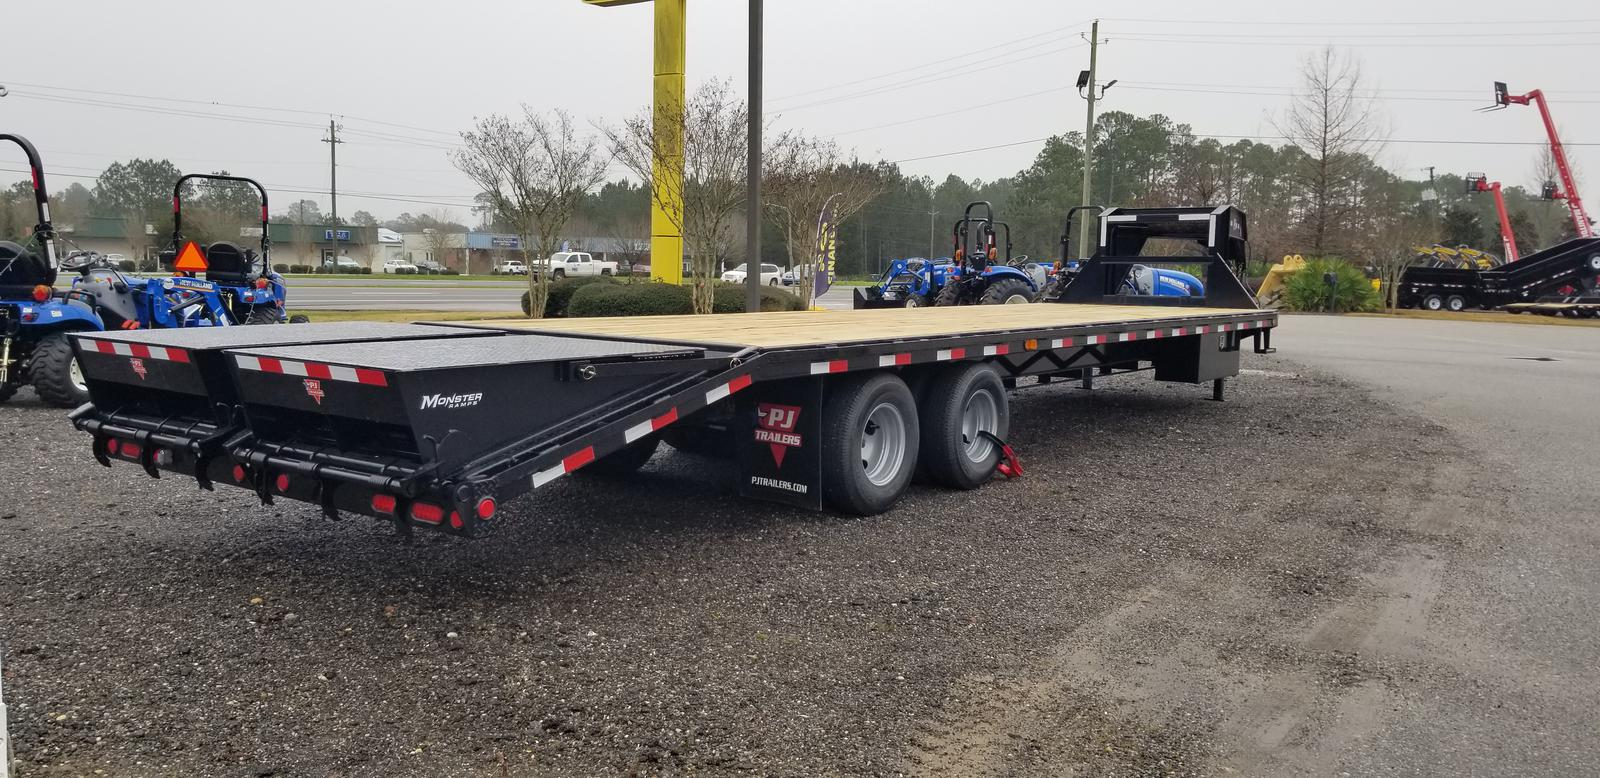 Inventory from Case IH and PJ Trailers Kingline Equipment